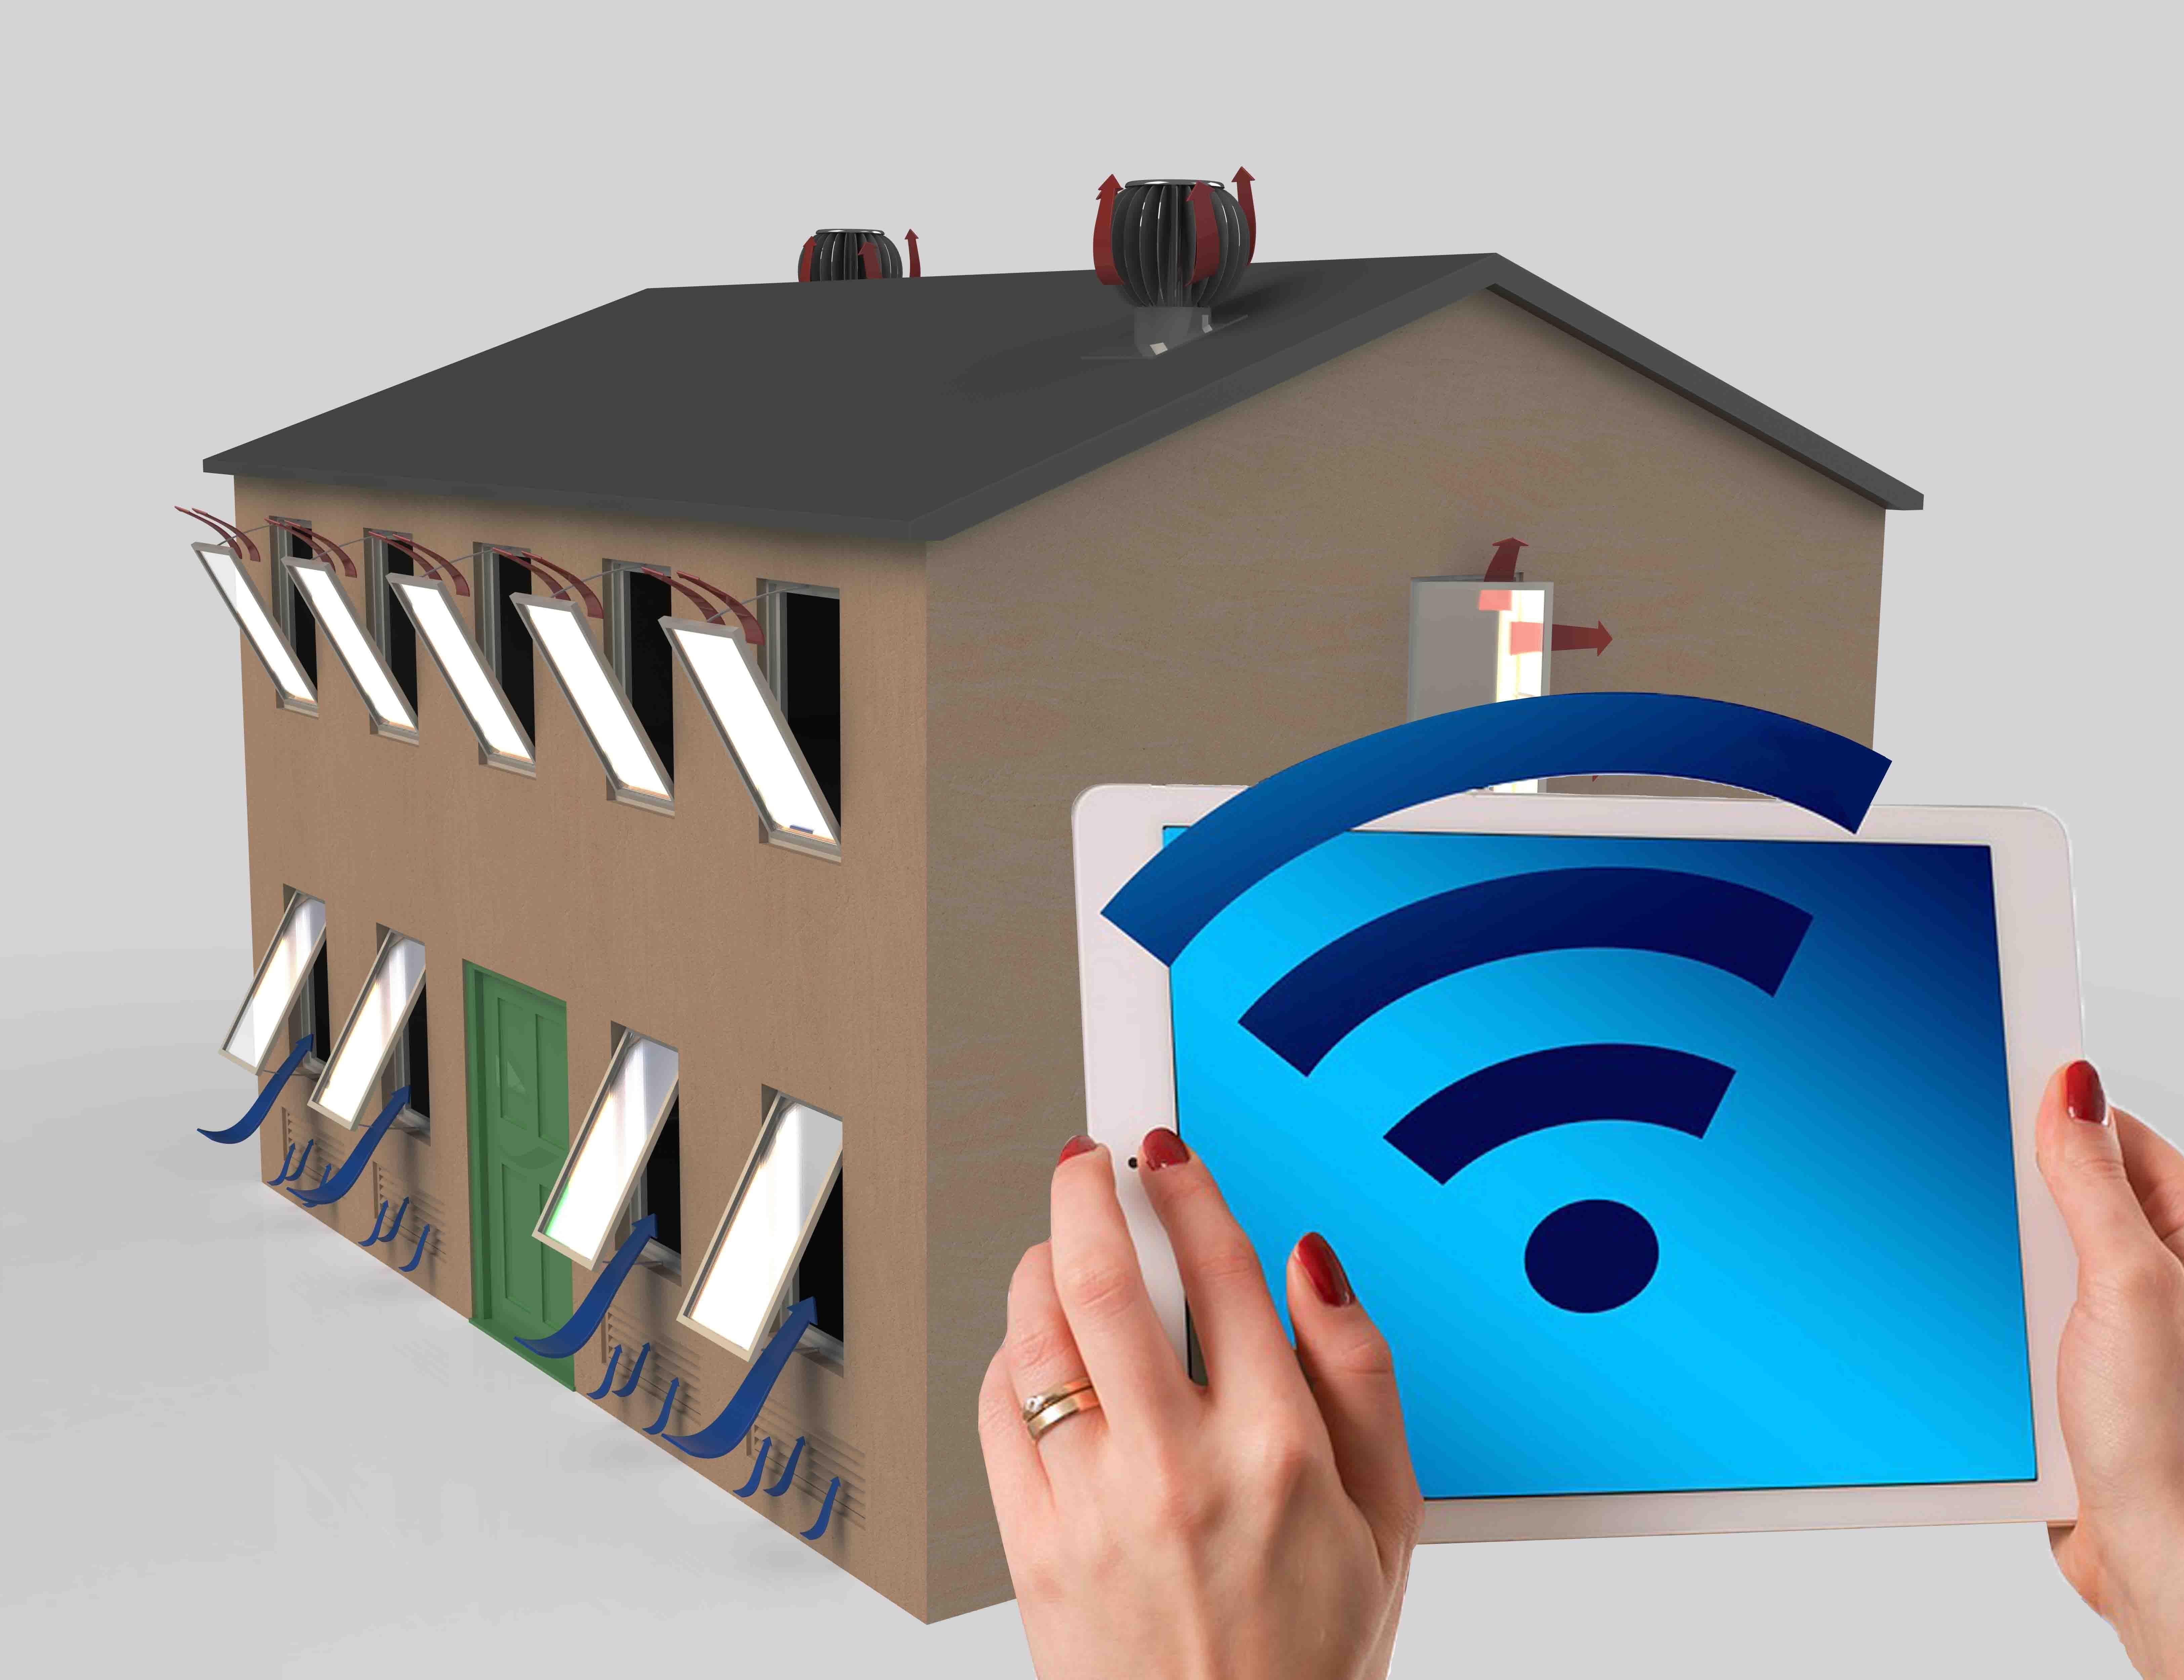 The introduction of home automation systems in to existing